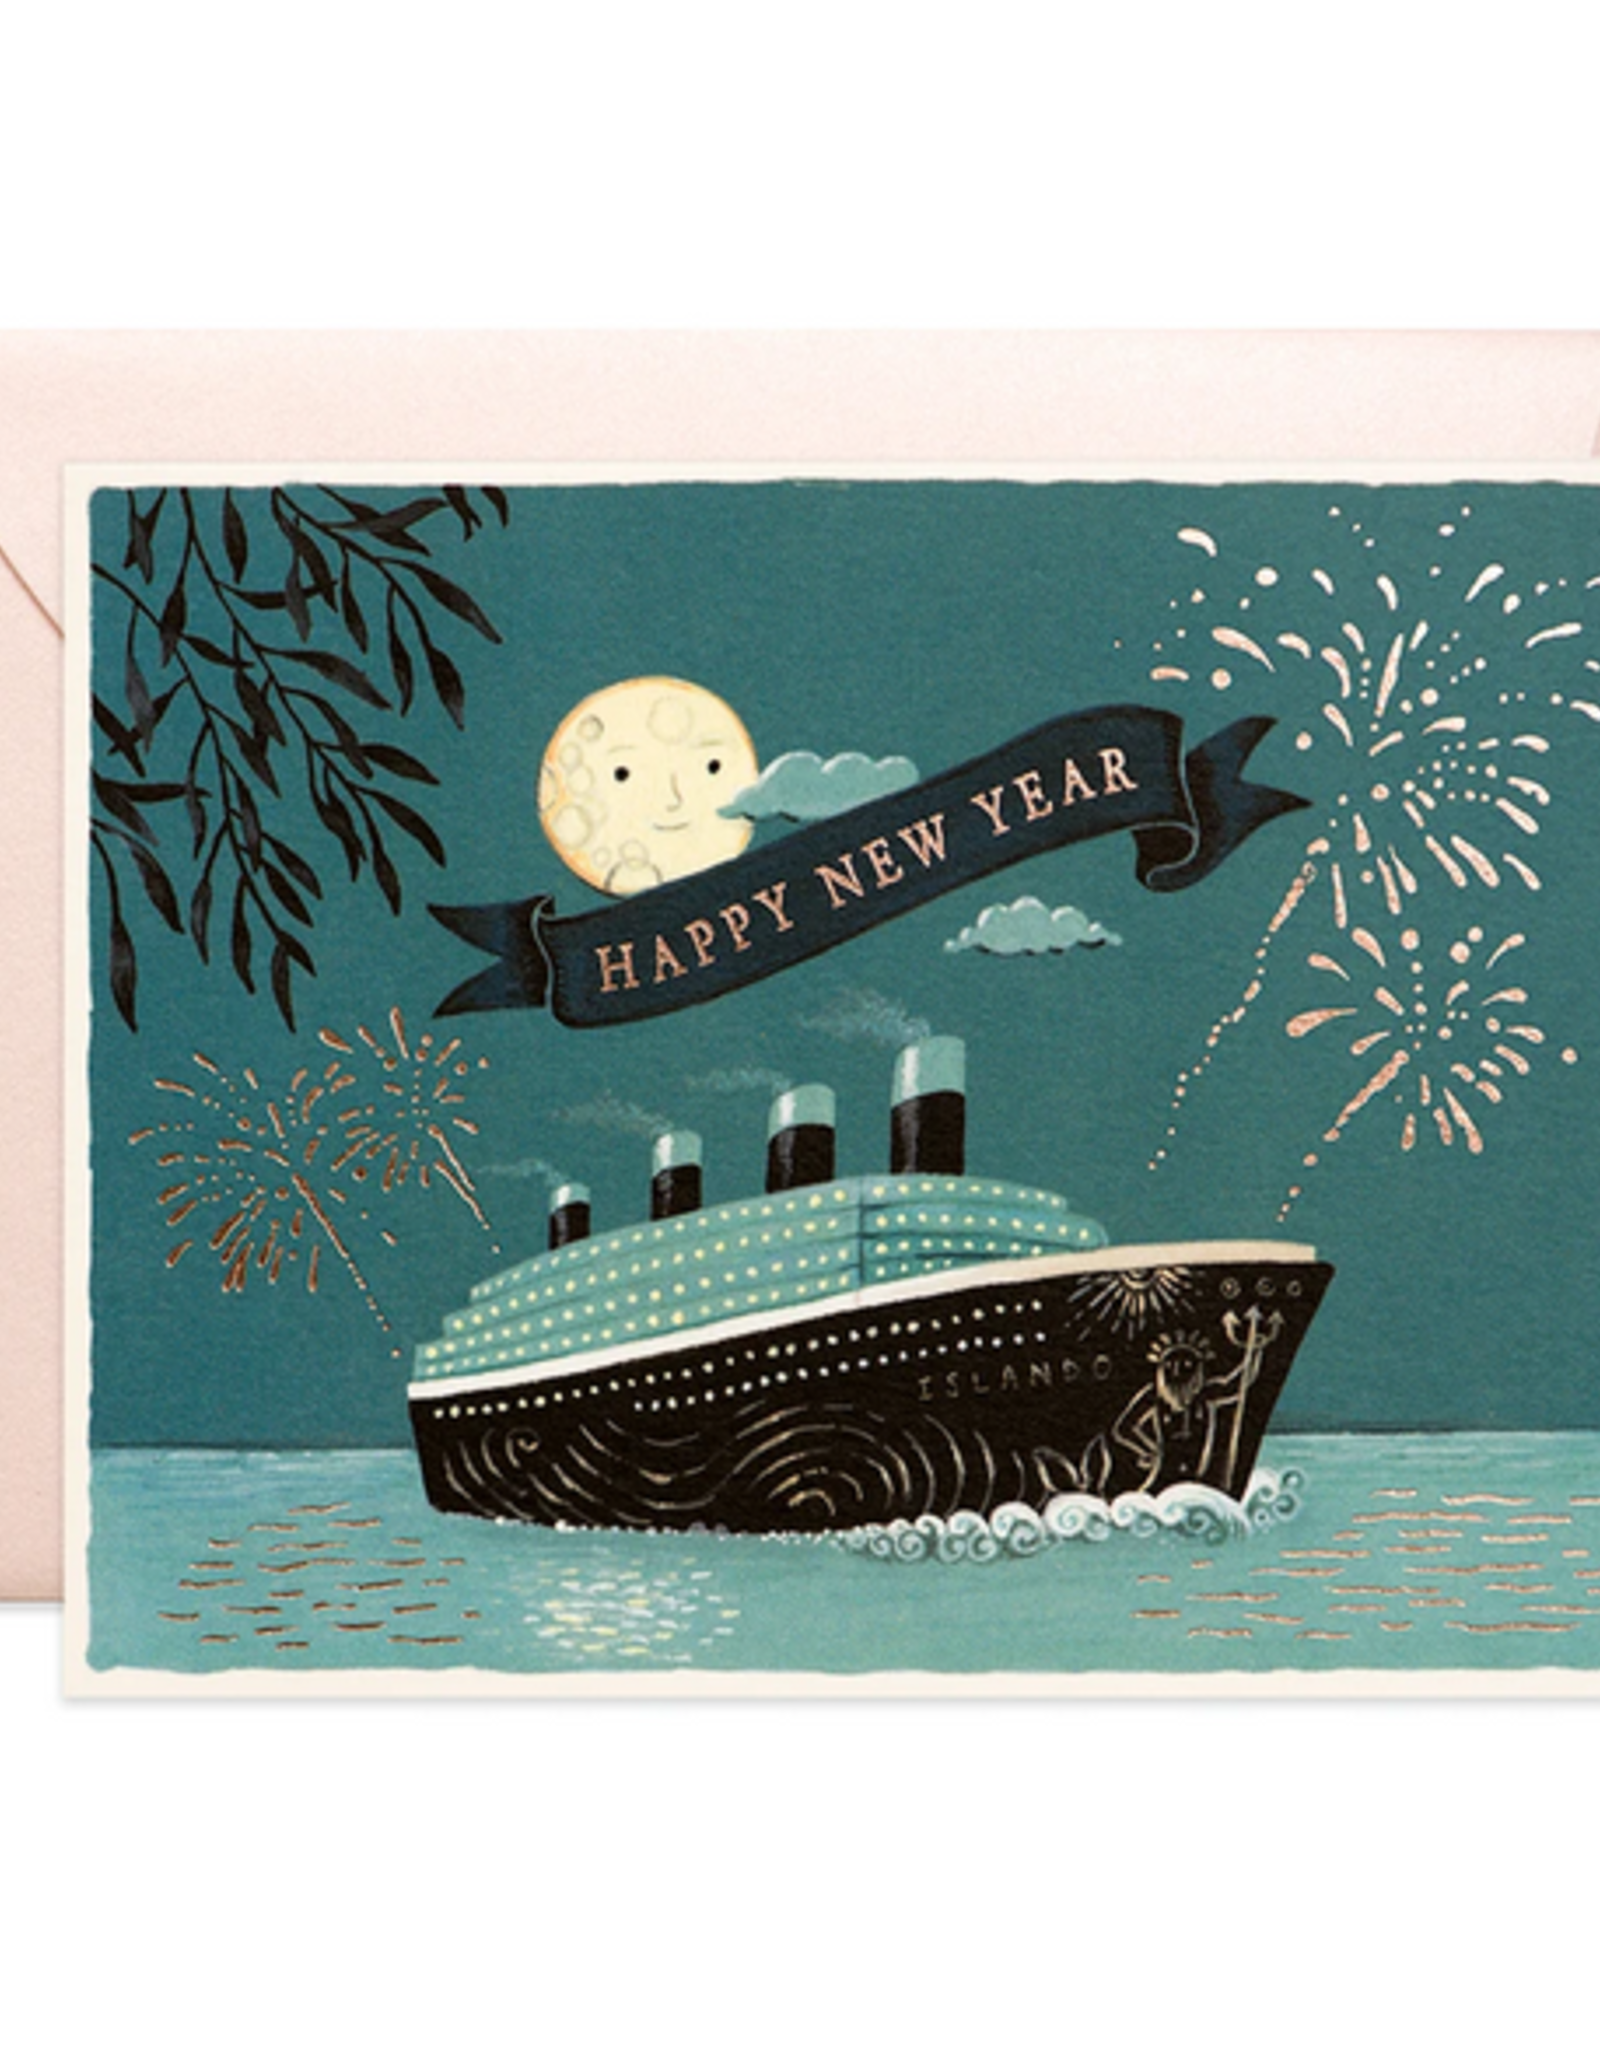 New Year Cruise Greeting Card